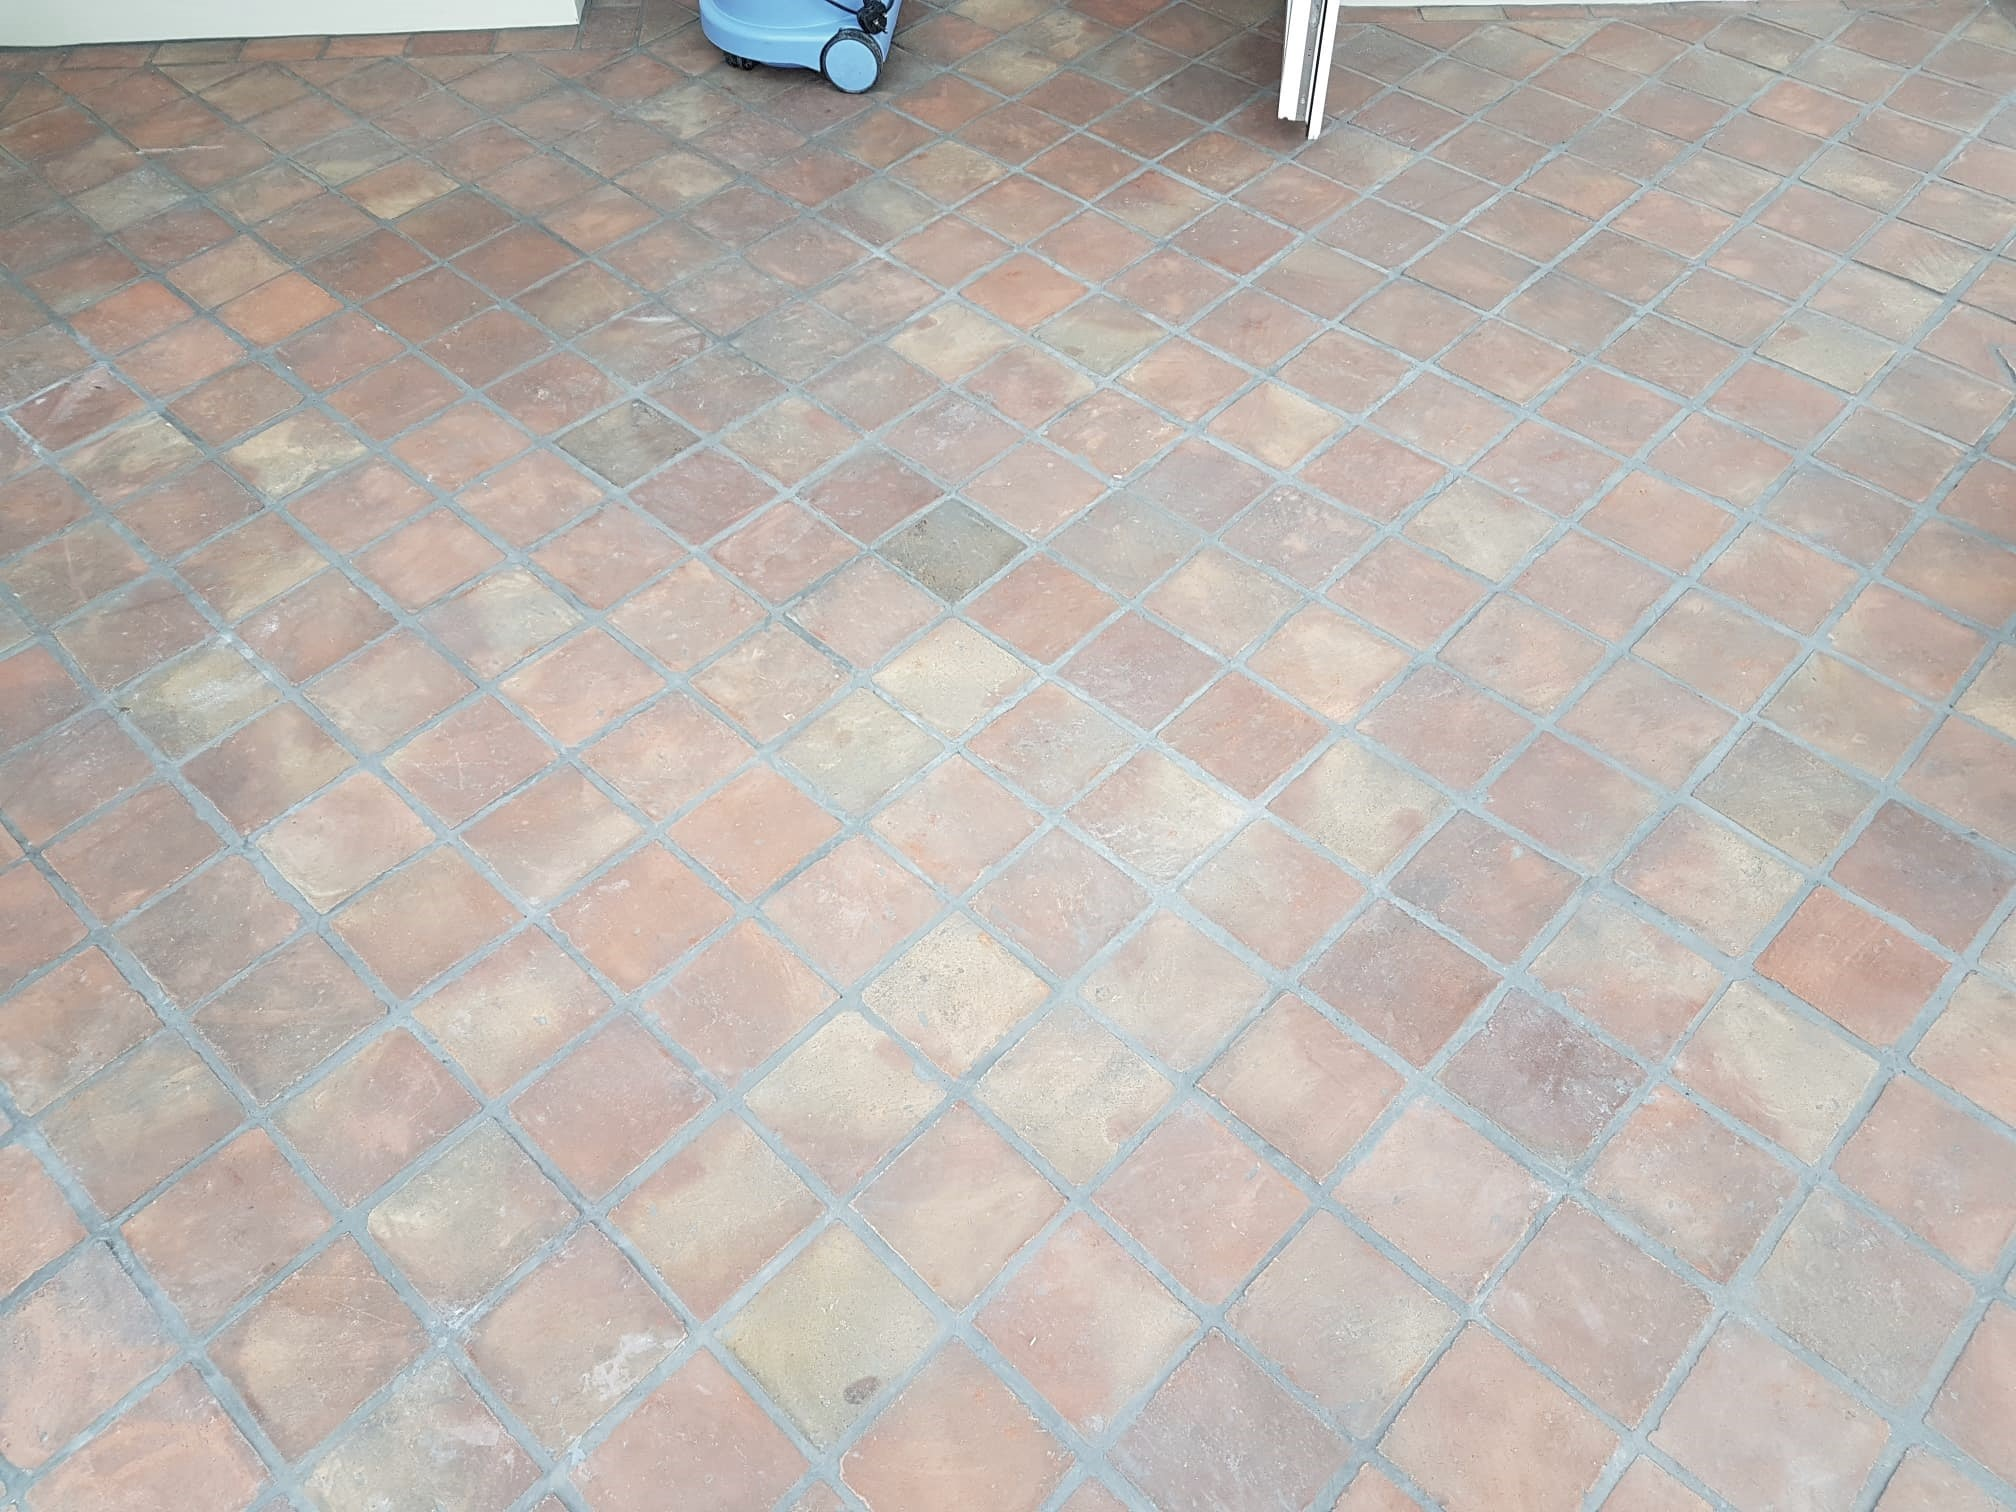 Terracotta Tiled Conservatory Floor Before Cleaning